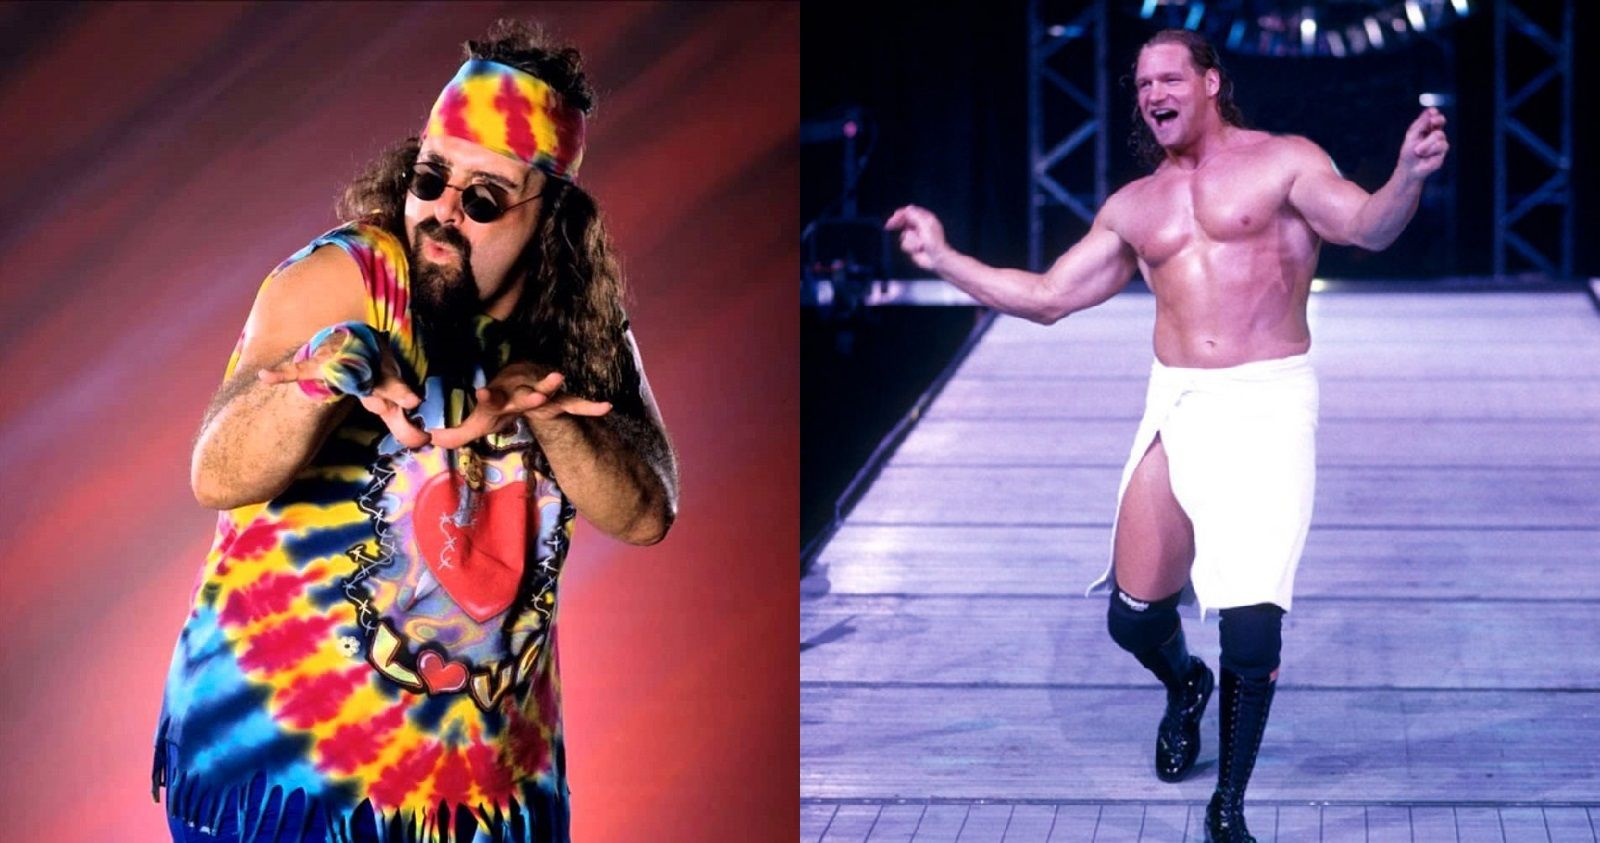 11 Wrestlers Who Were Obsessed With Bringing The LOVE